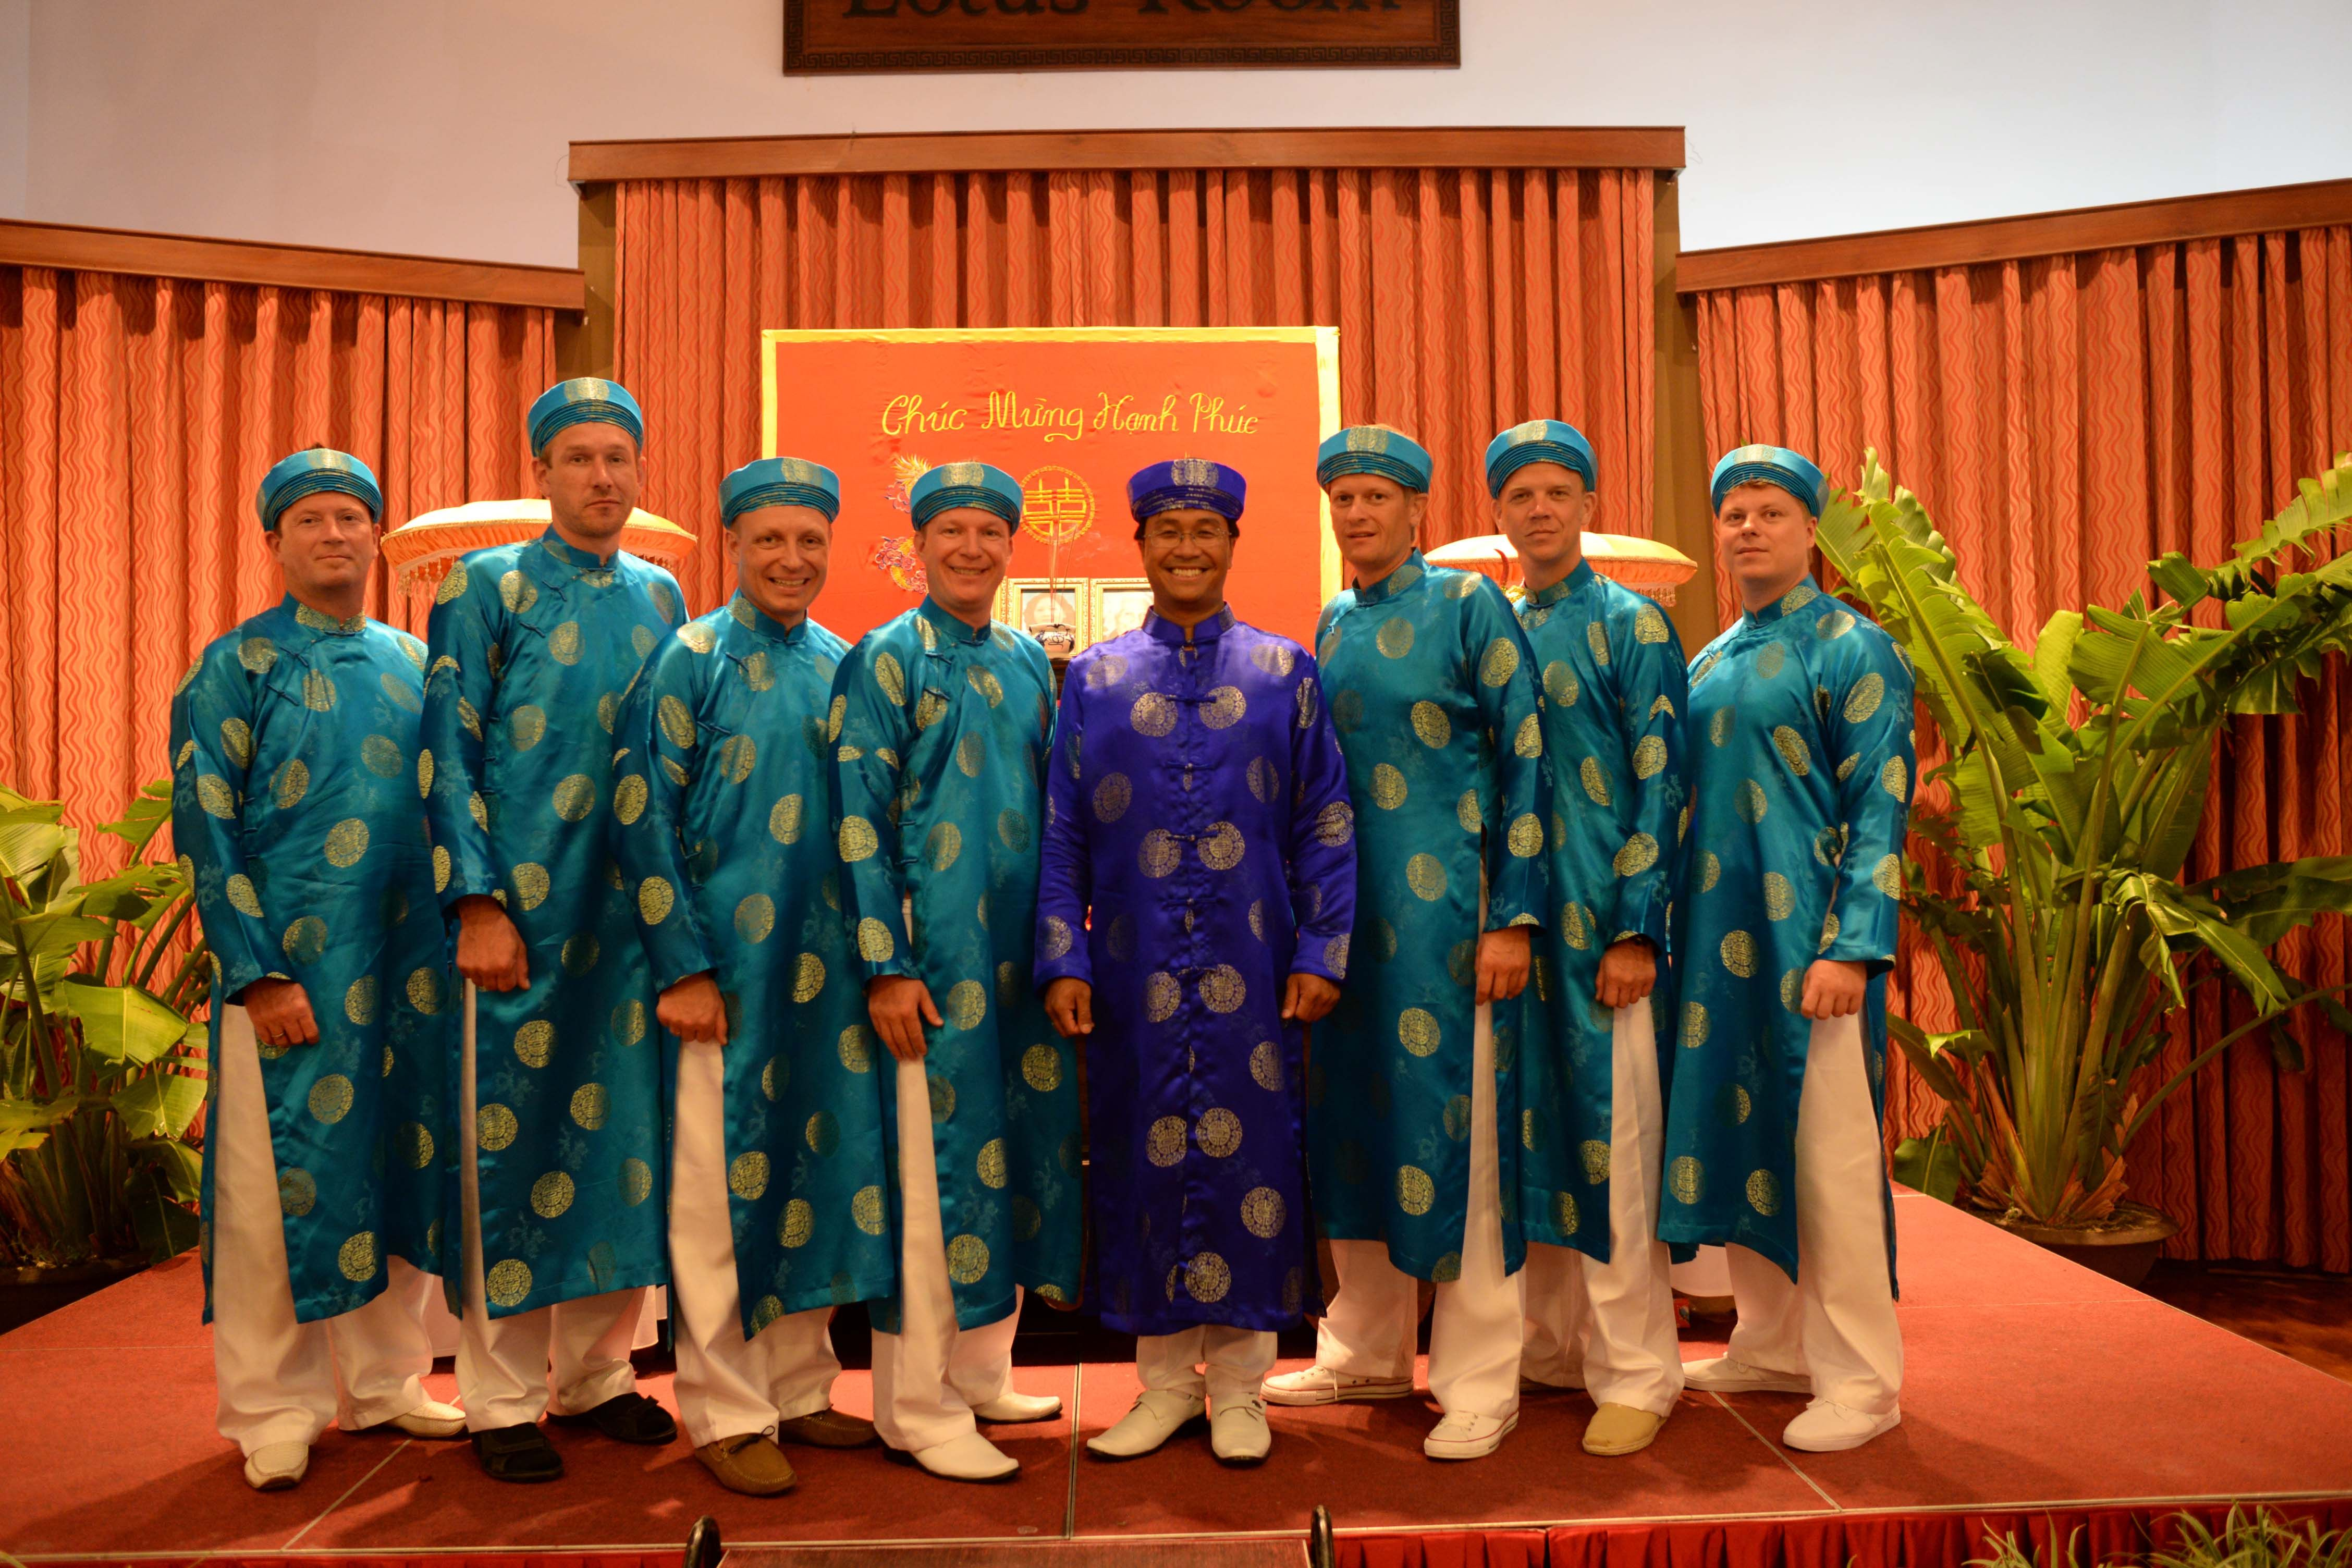 The men's party at a Vietnamese tea ceremony.